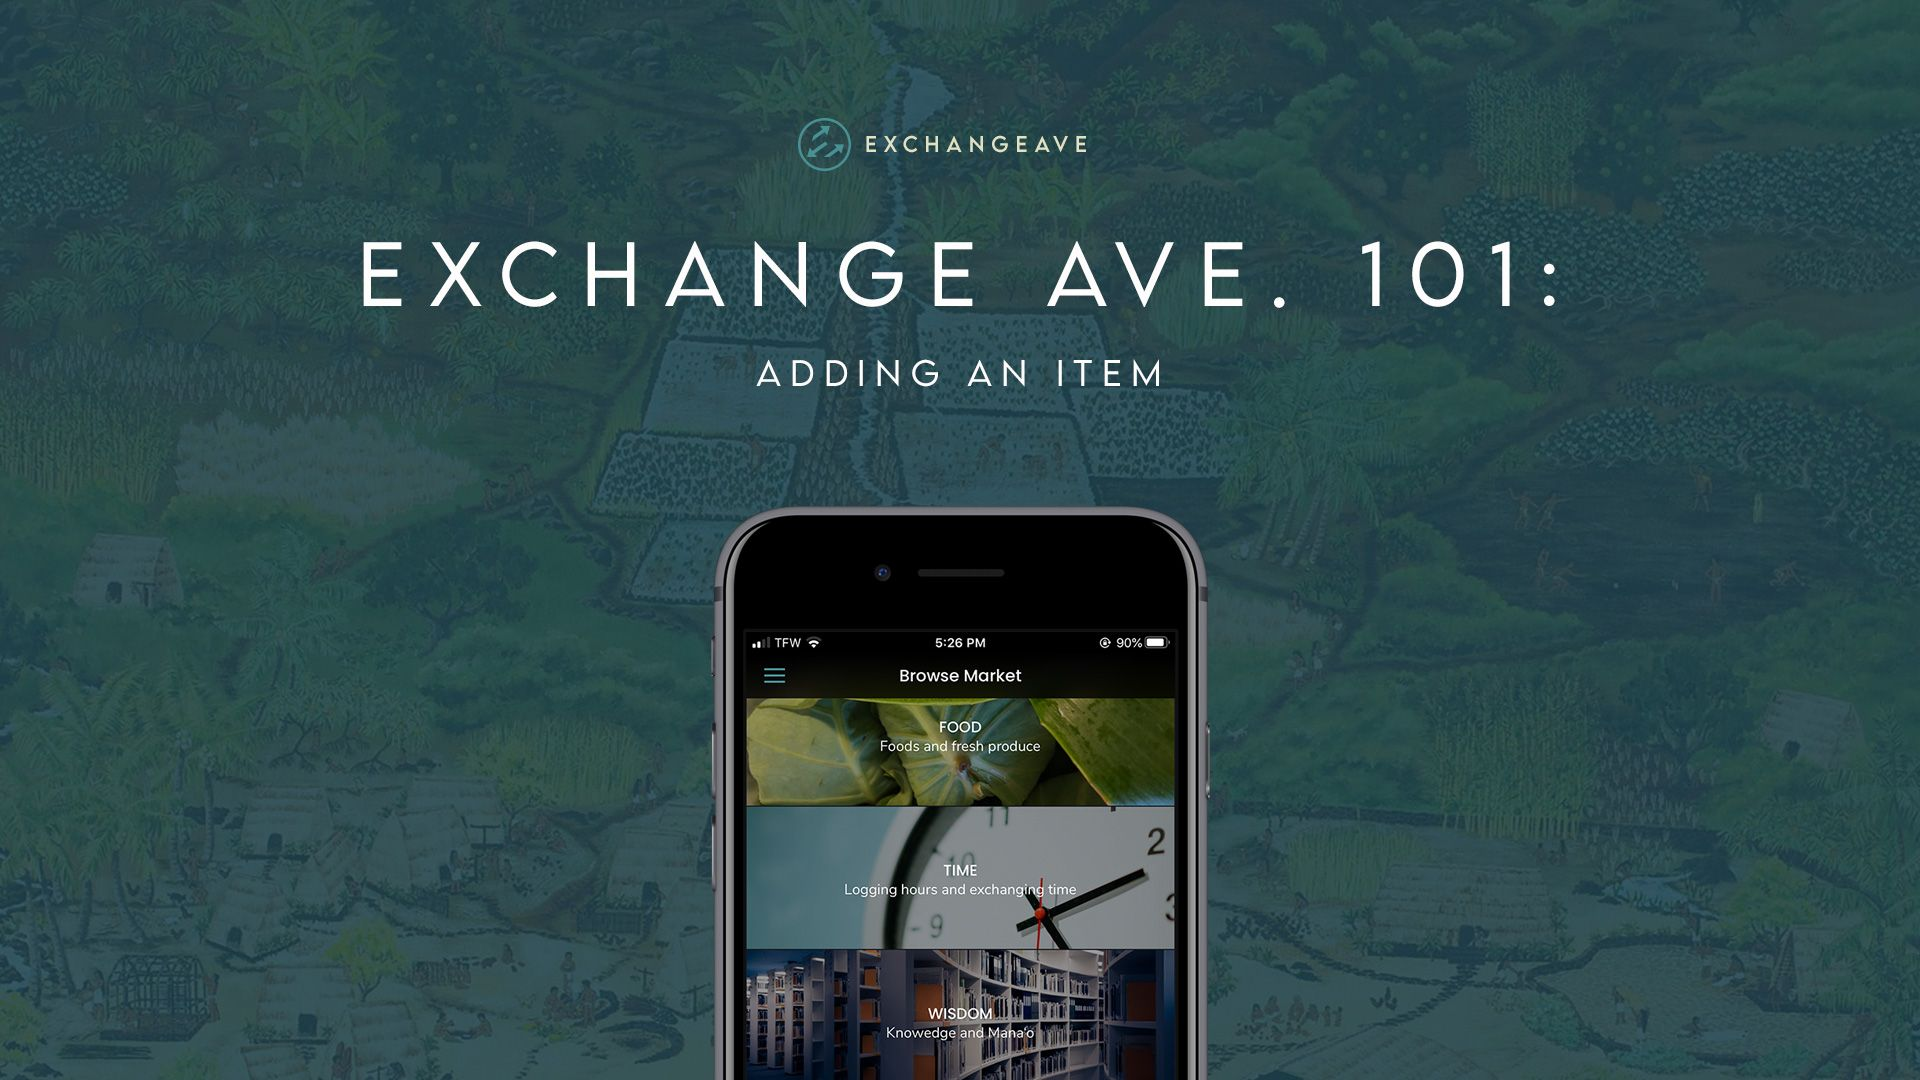 Exchange Ave. 101: Adding An Item